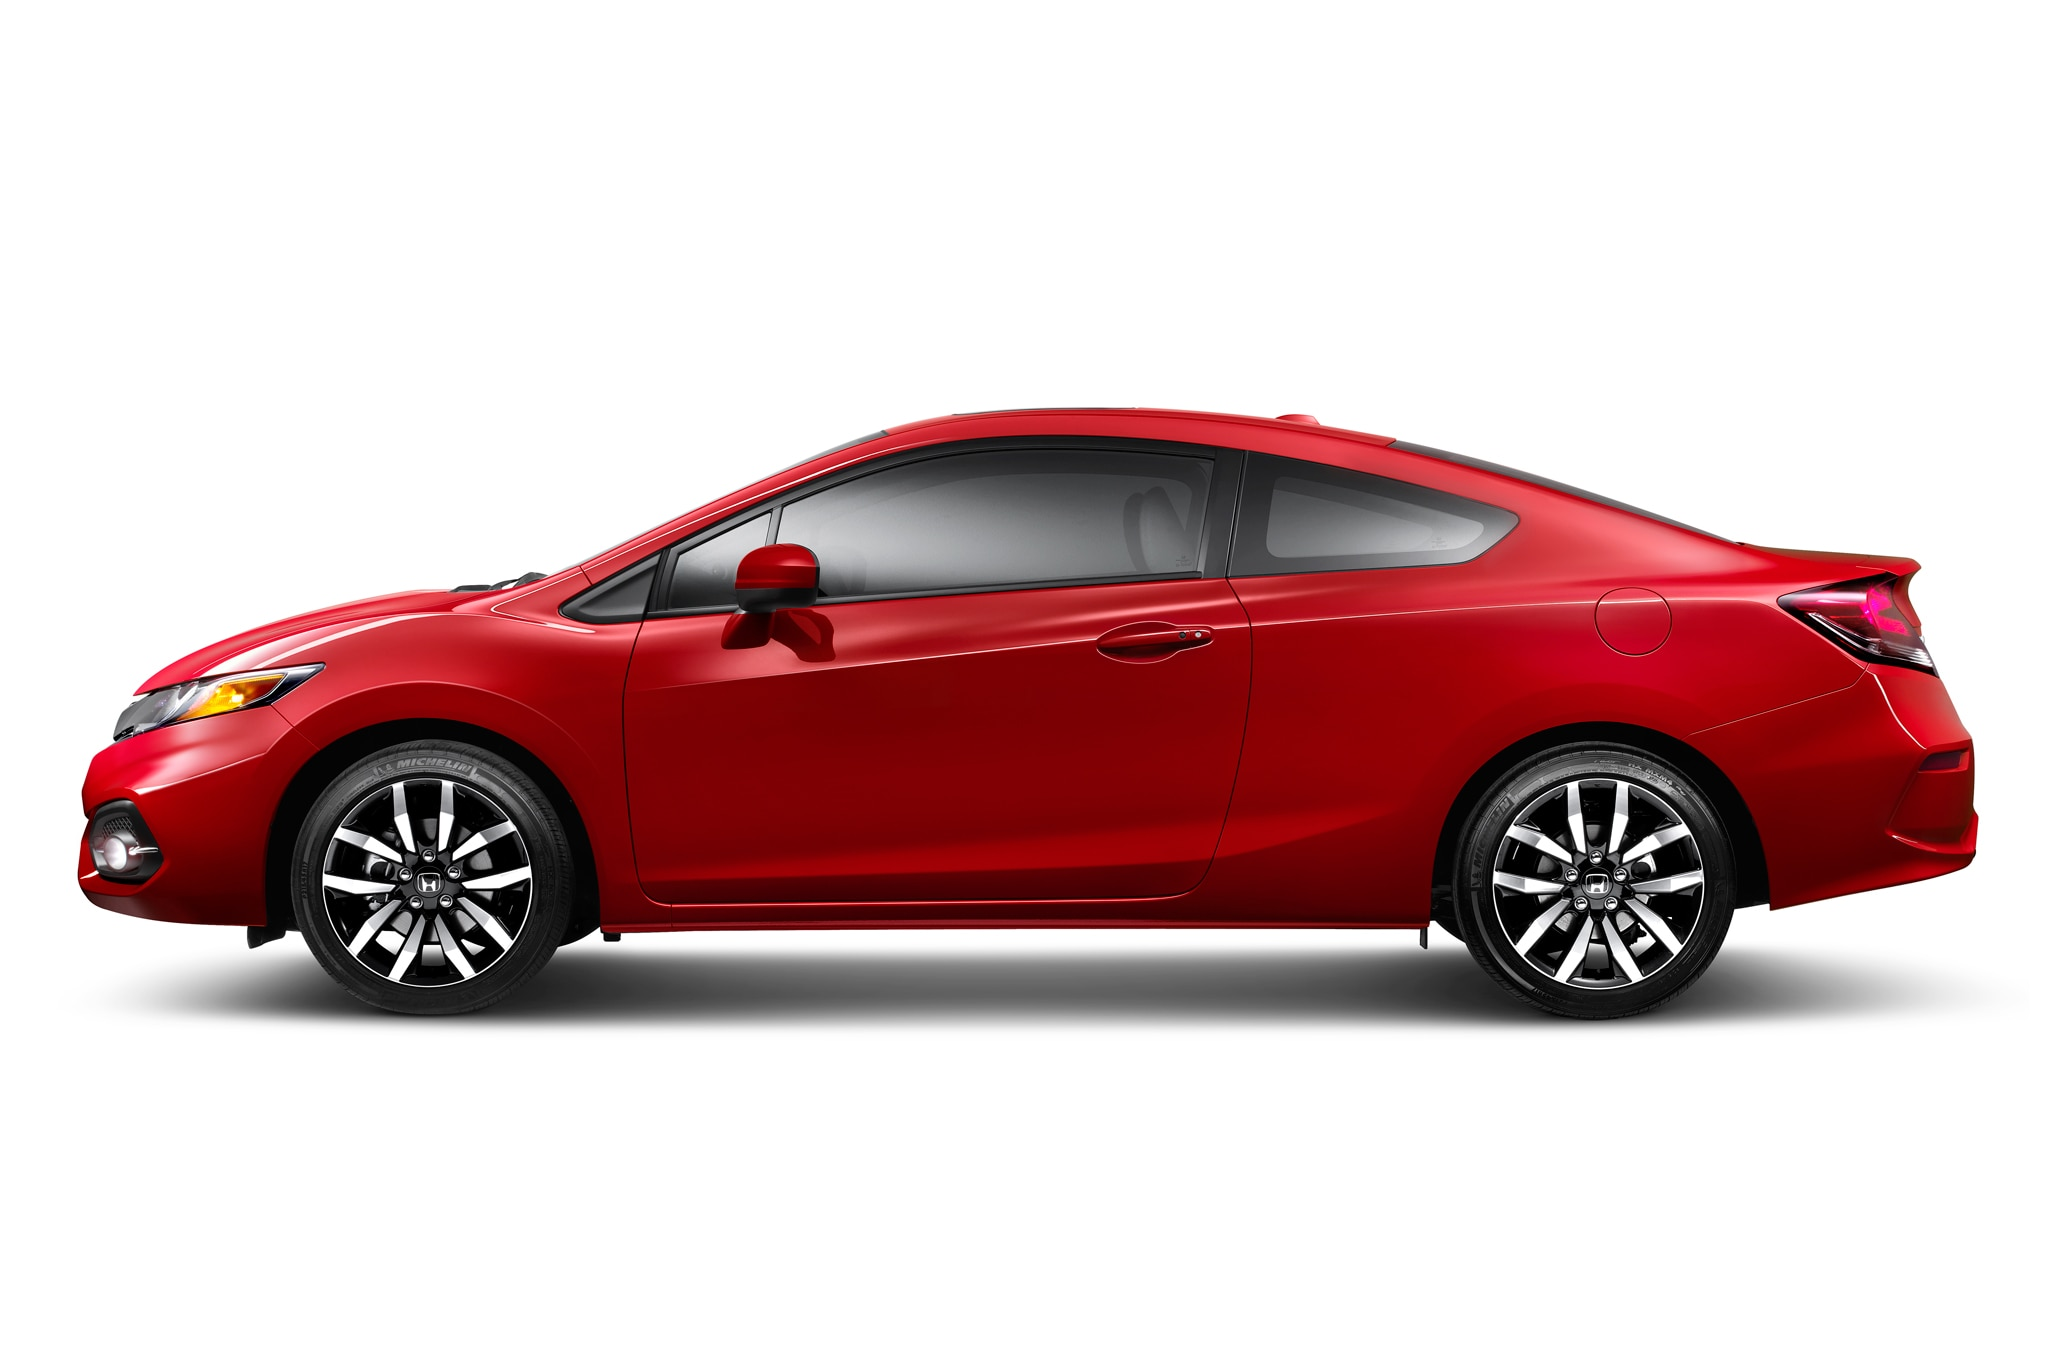 2014 Honda Civic Red Side View2